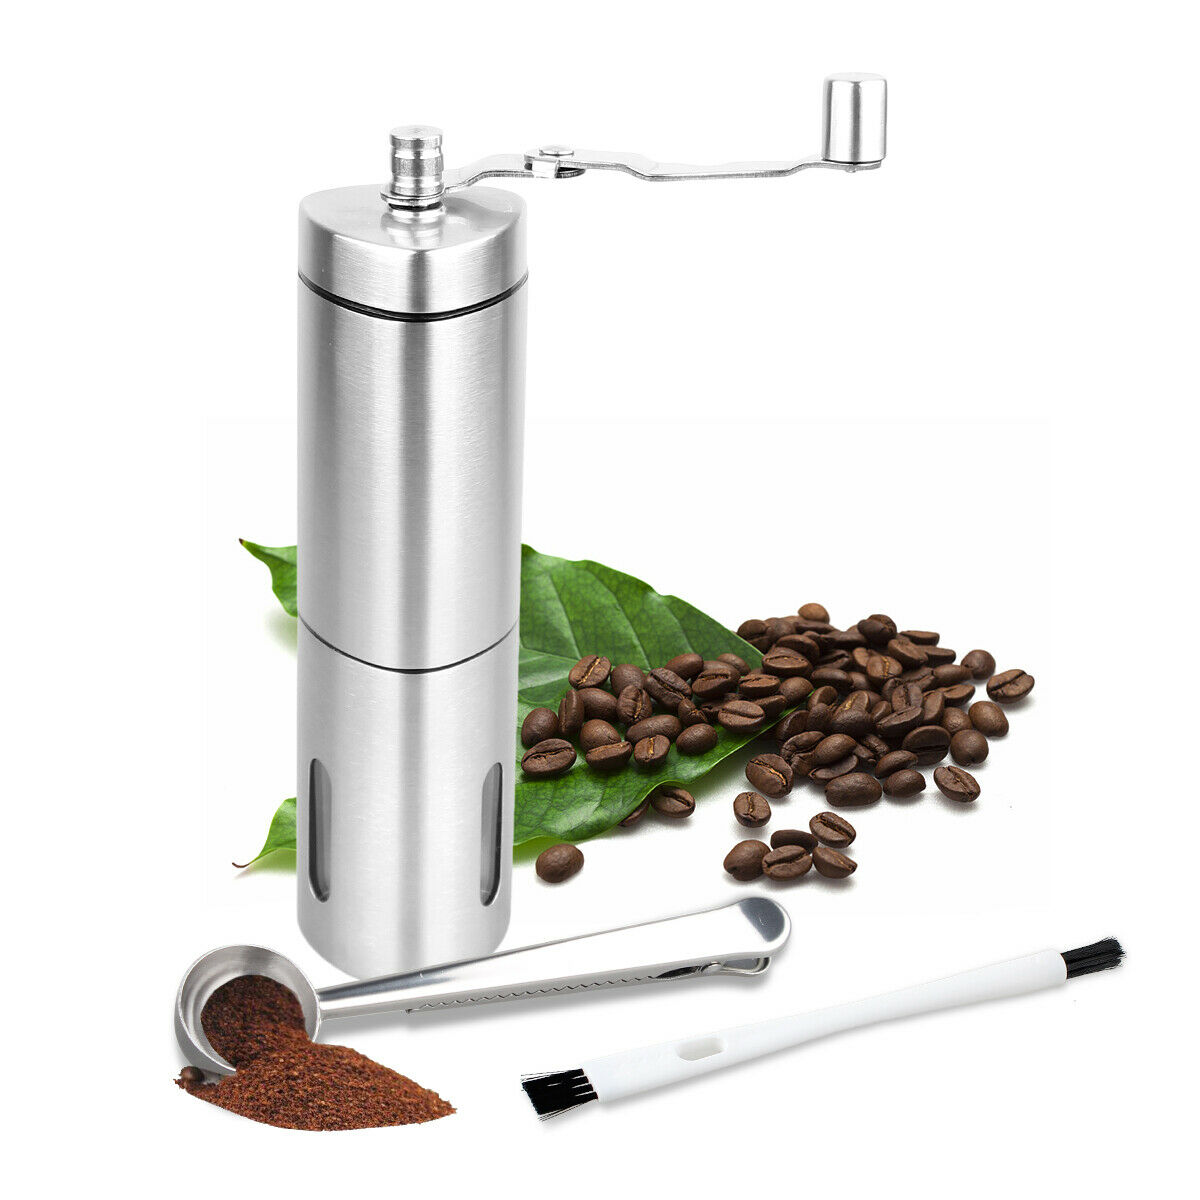 Stainless Steel Manual Coffee Grinder Portable Conical Hand